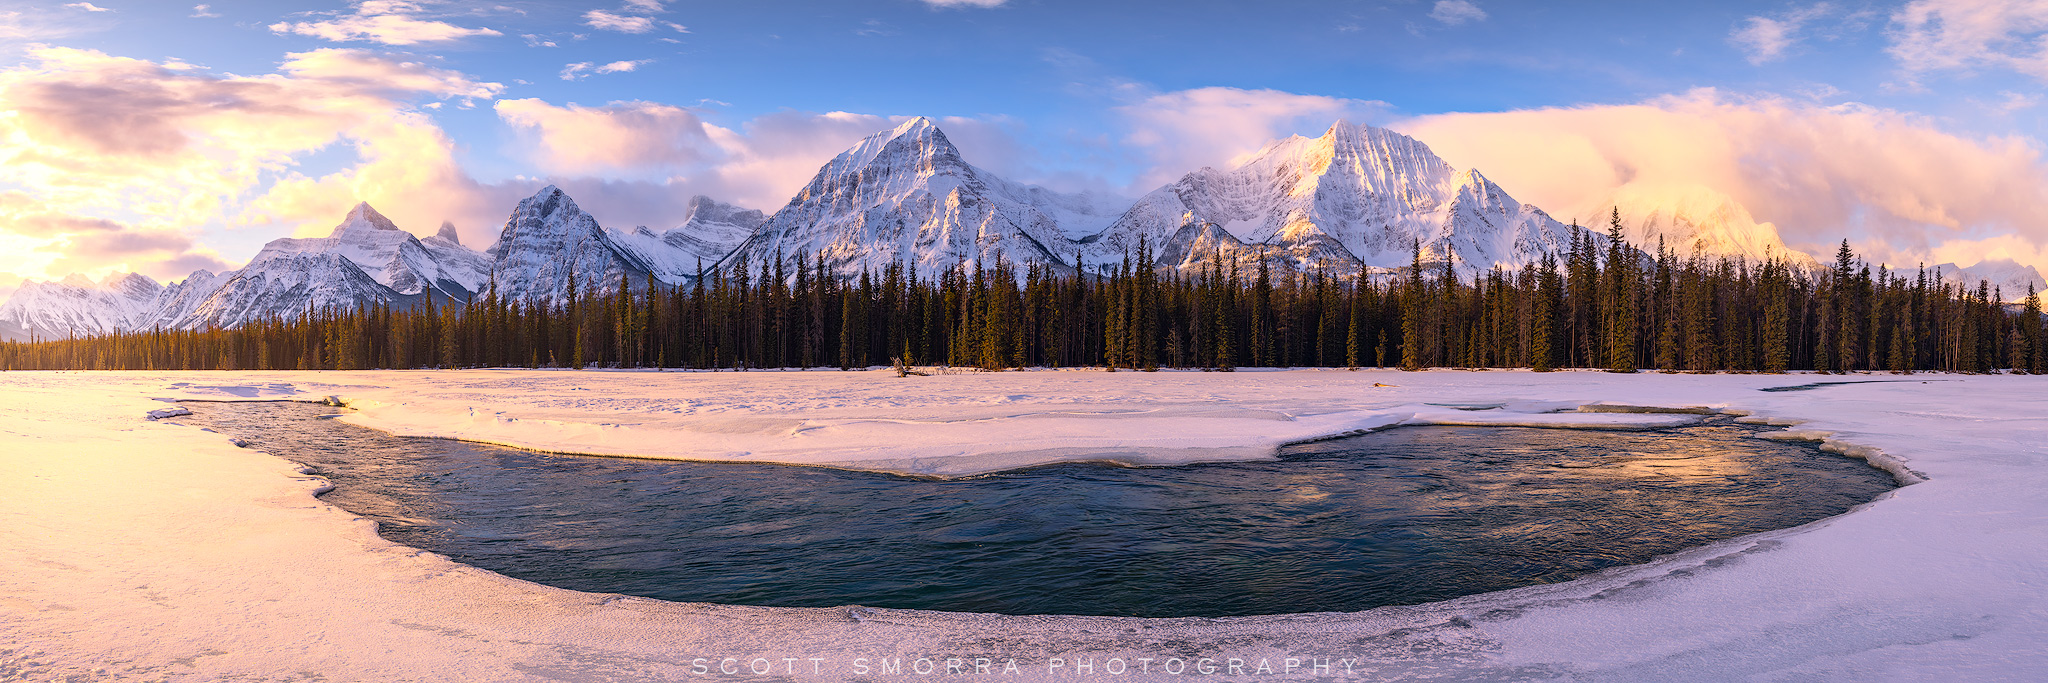 Jasper National Park, Canada, Alberta, Athabasca, River, Valley, Winter, panorama, mountains, snow, winter, sunrise, photo